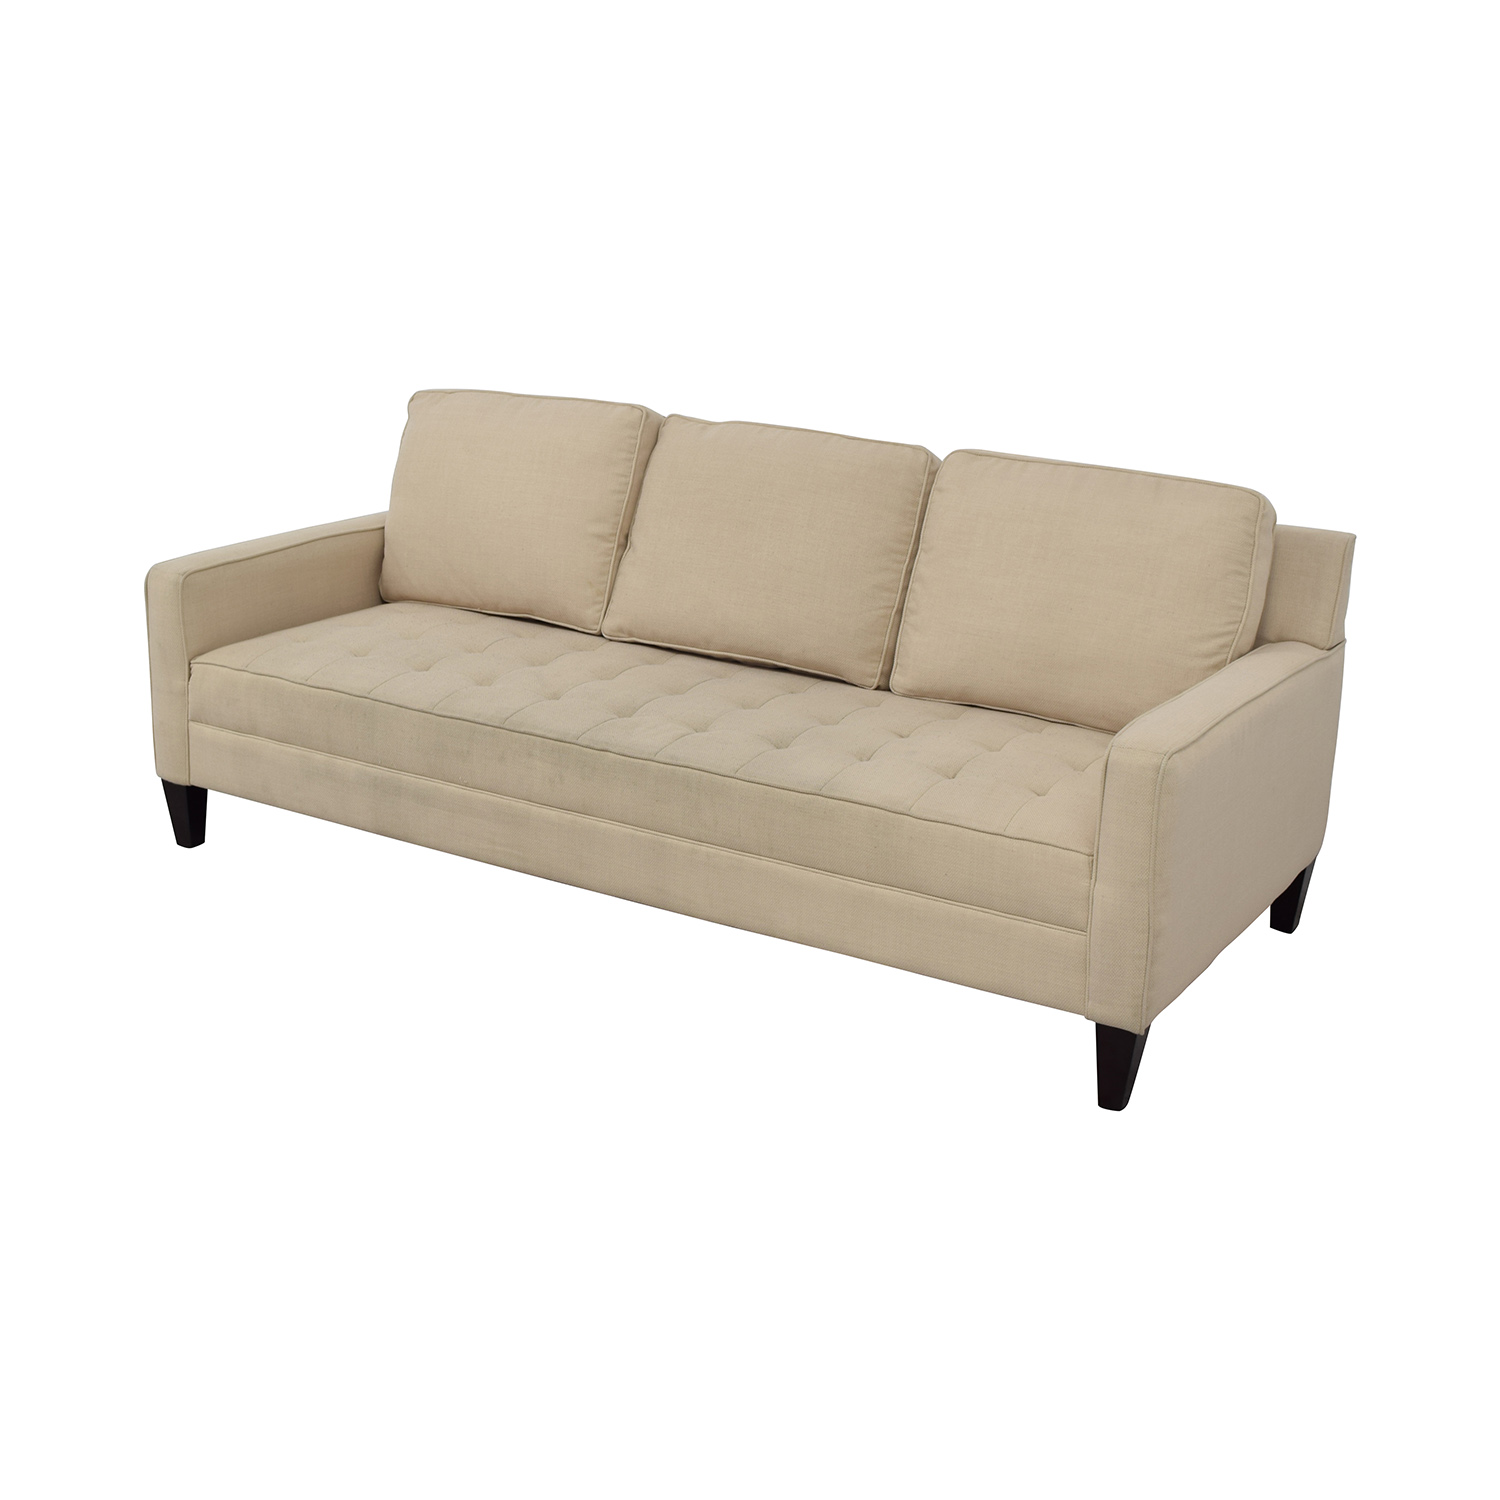 Single Bench Cushion Sofa 28 Images Sherrill Living Room One Cushion Sofa 5260 Stacy Single